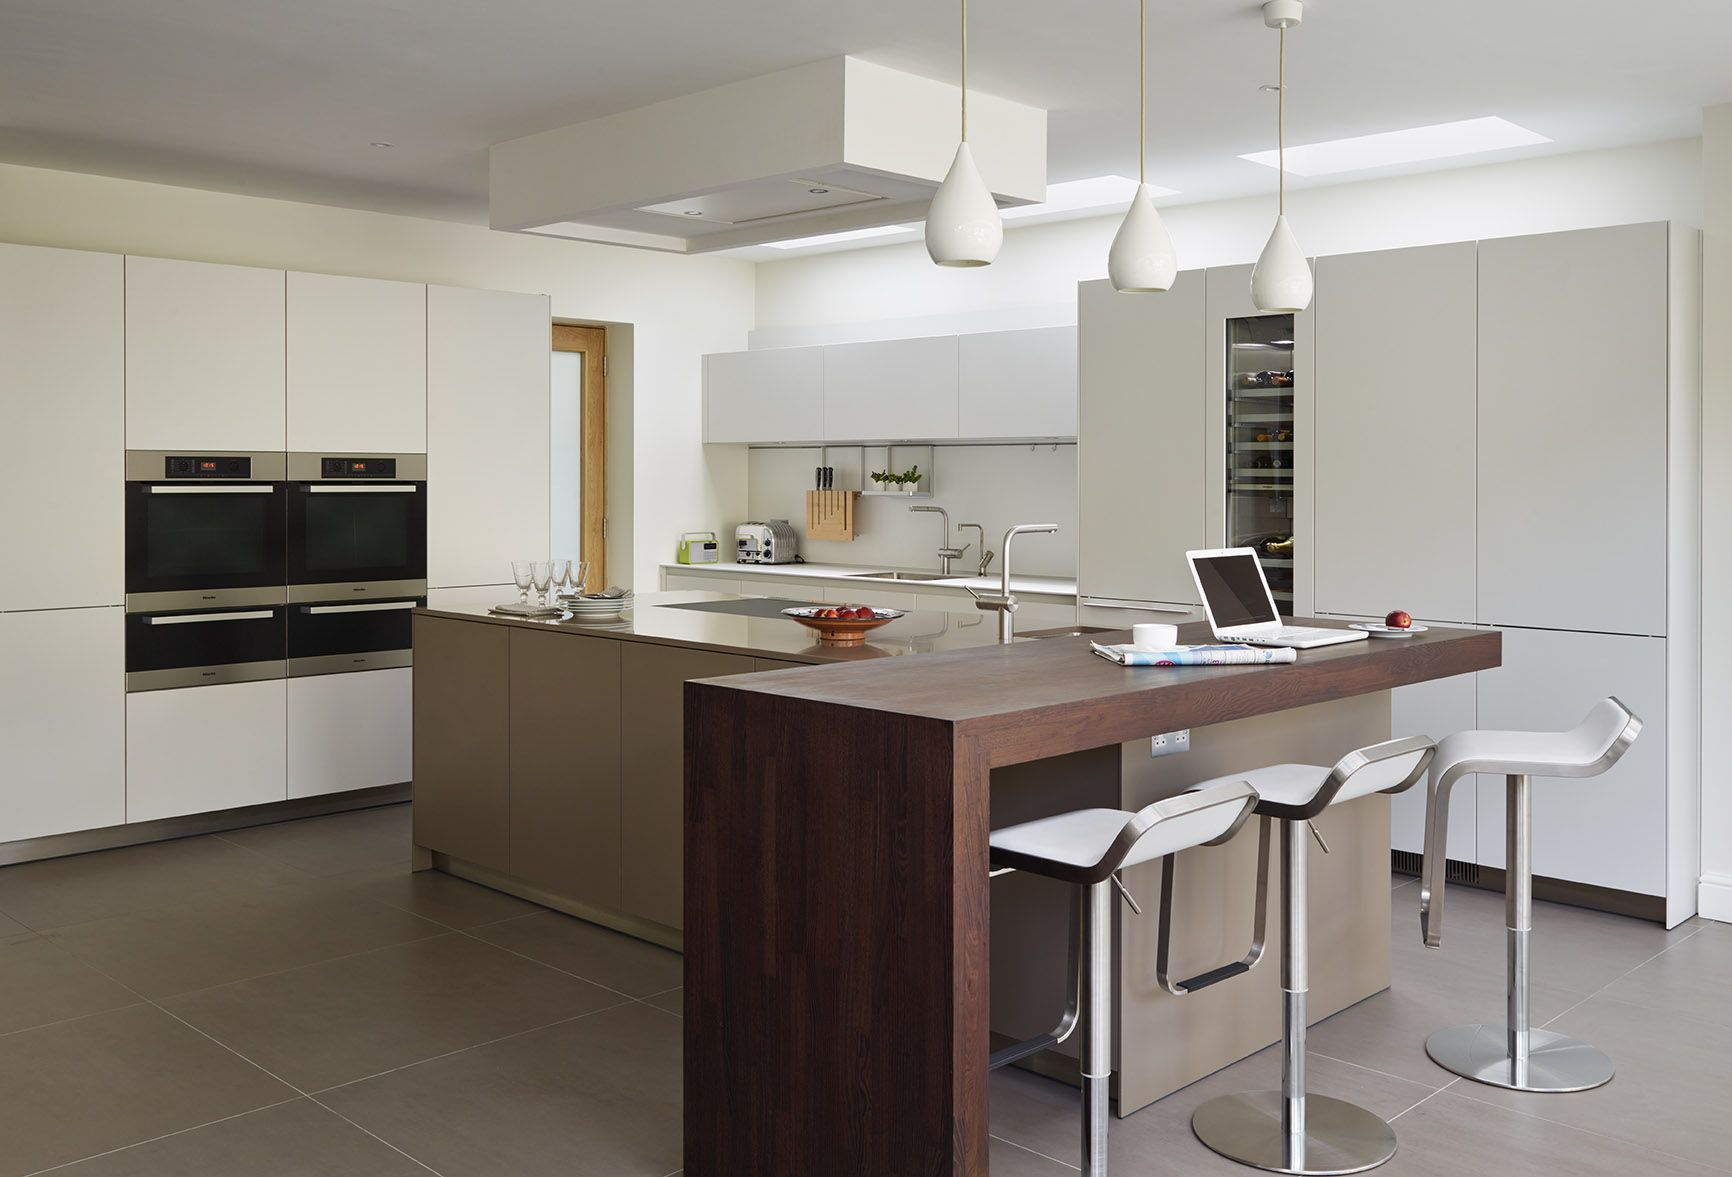 bulthaup by kitchen Architecture \'Urban family living\' case study ...